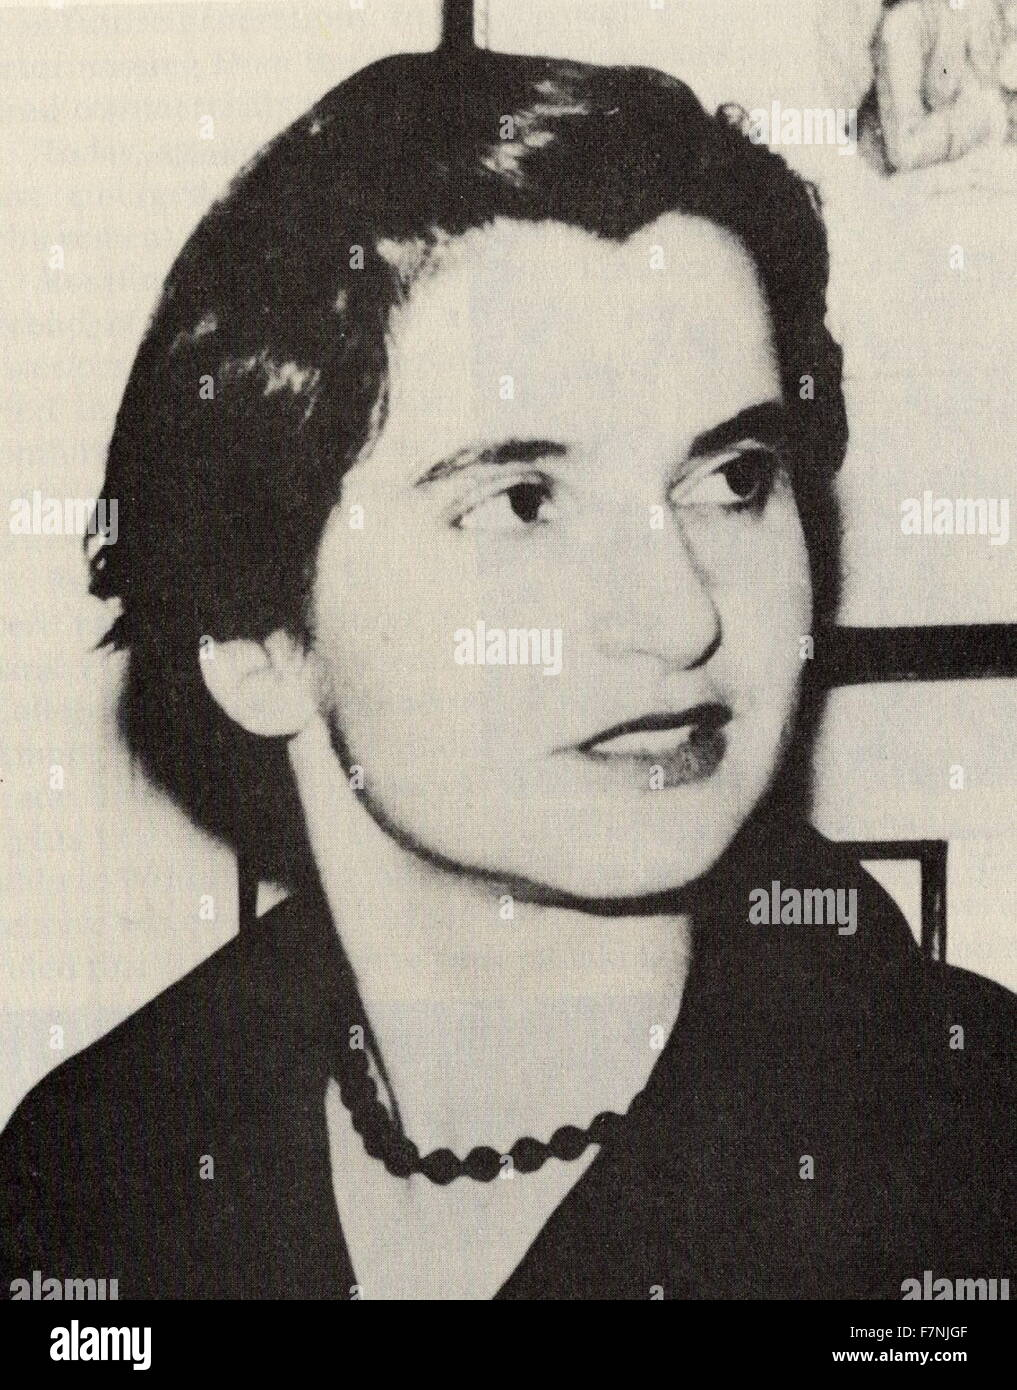 Rosalind Elsie Franklin (1920 – 16 April 1958). English chemist and X-ray crystallographer who made contributions - Stock Image